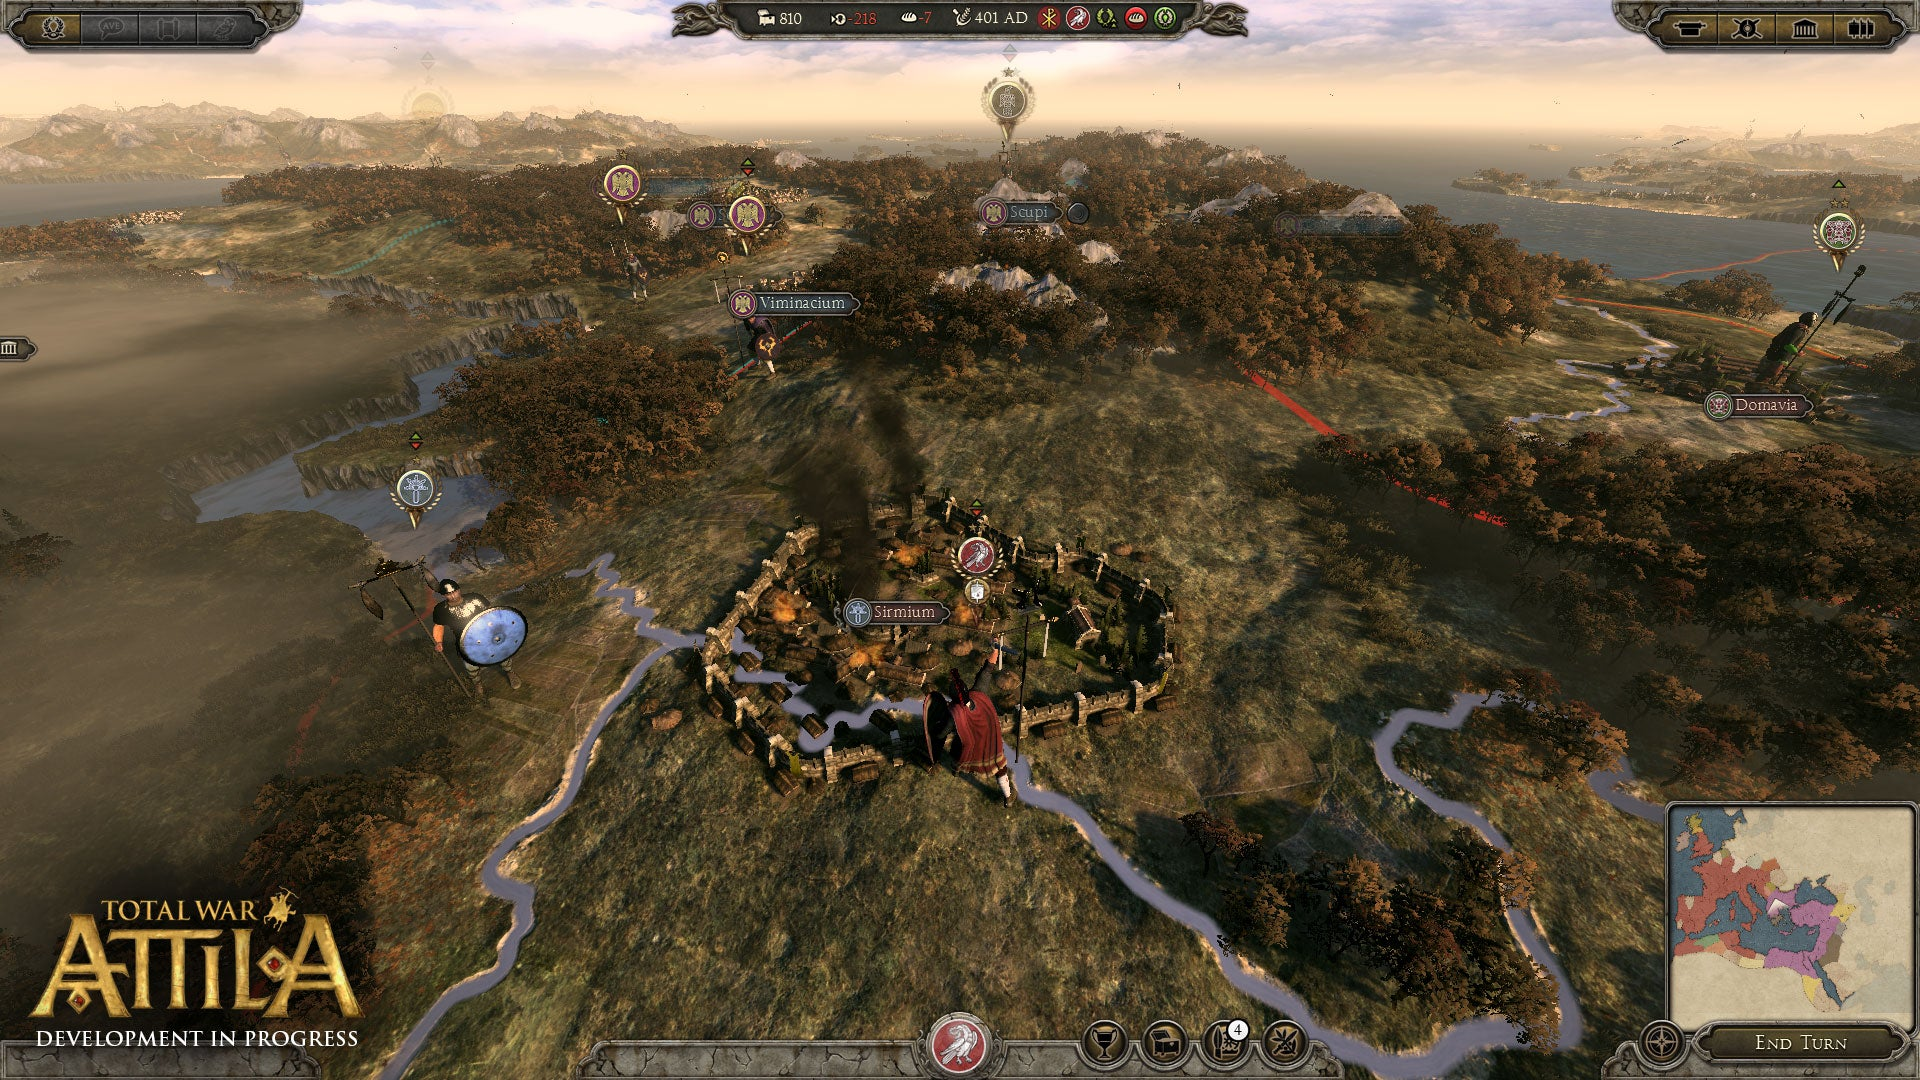 There's A New Total War Game Coming, But Hrm